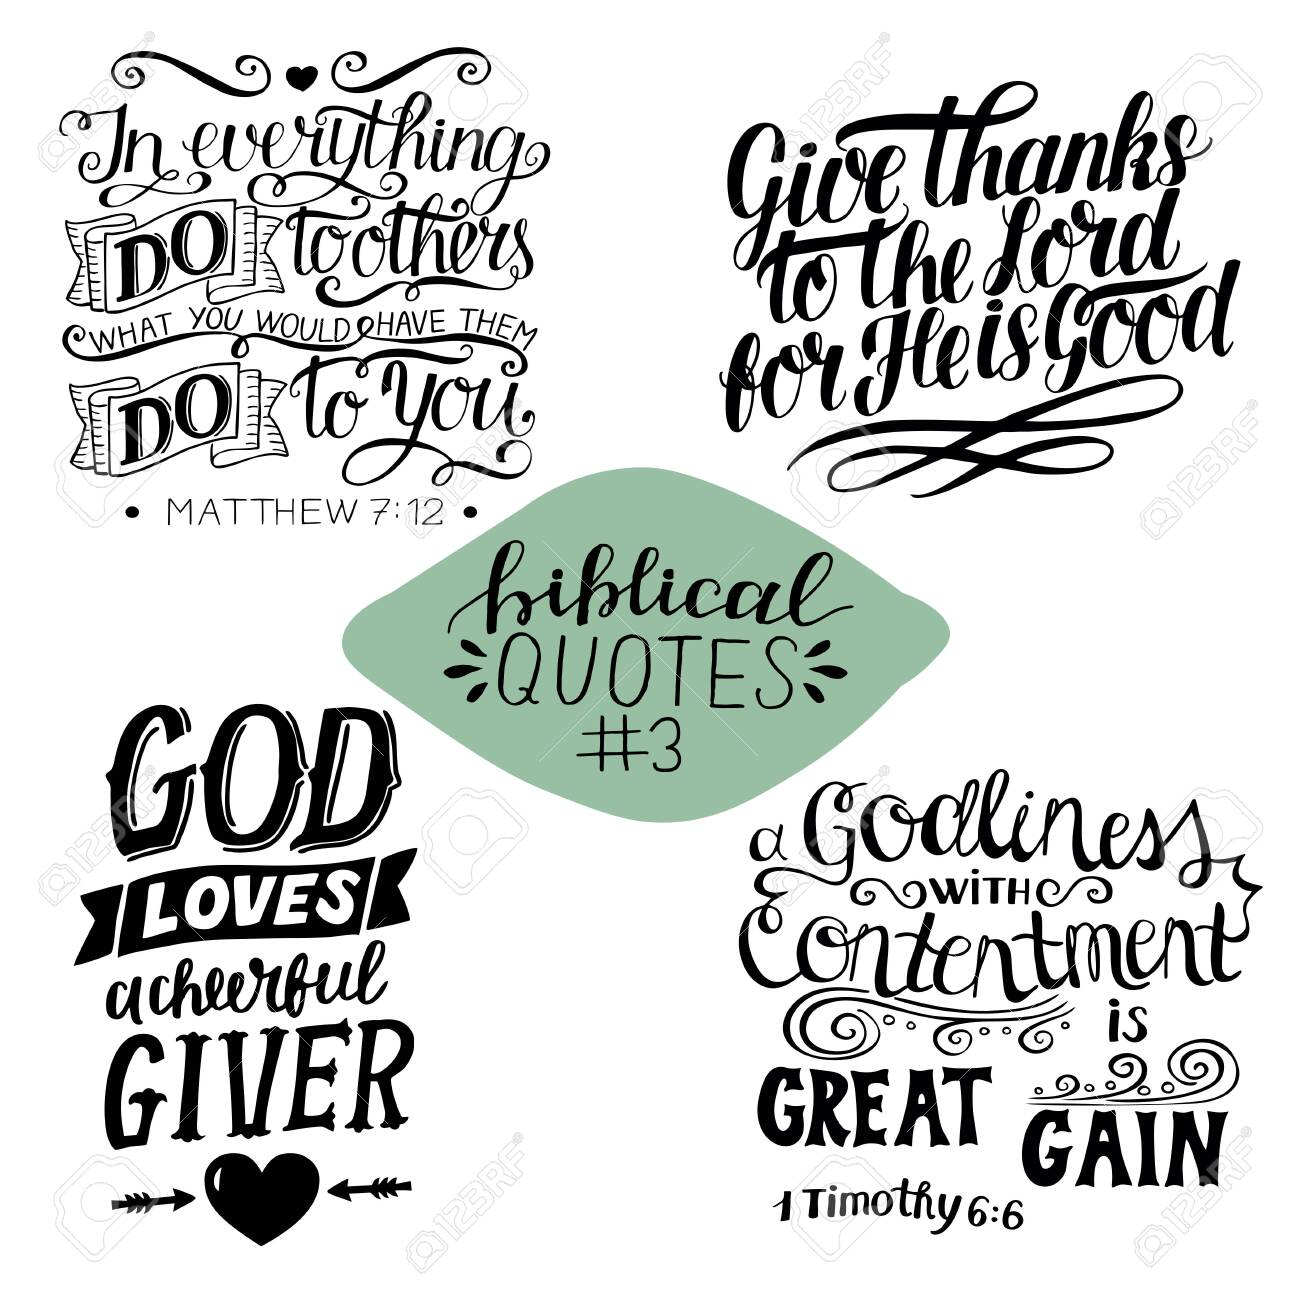 collection bible verses do to others give thanks to